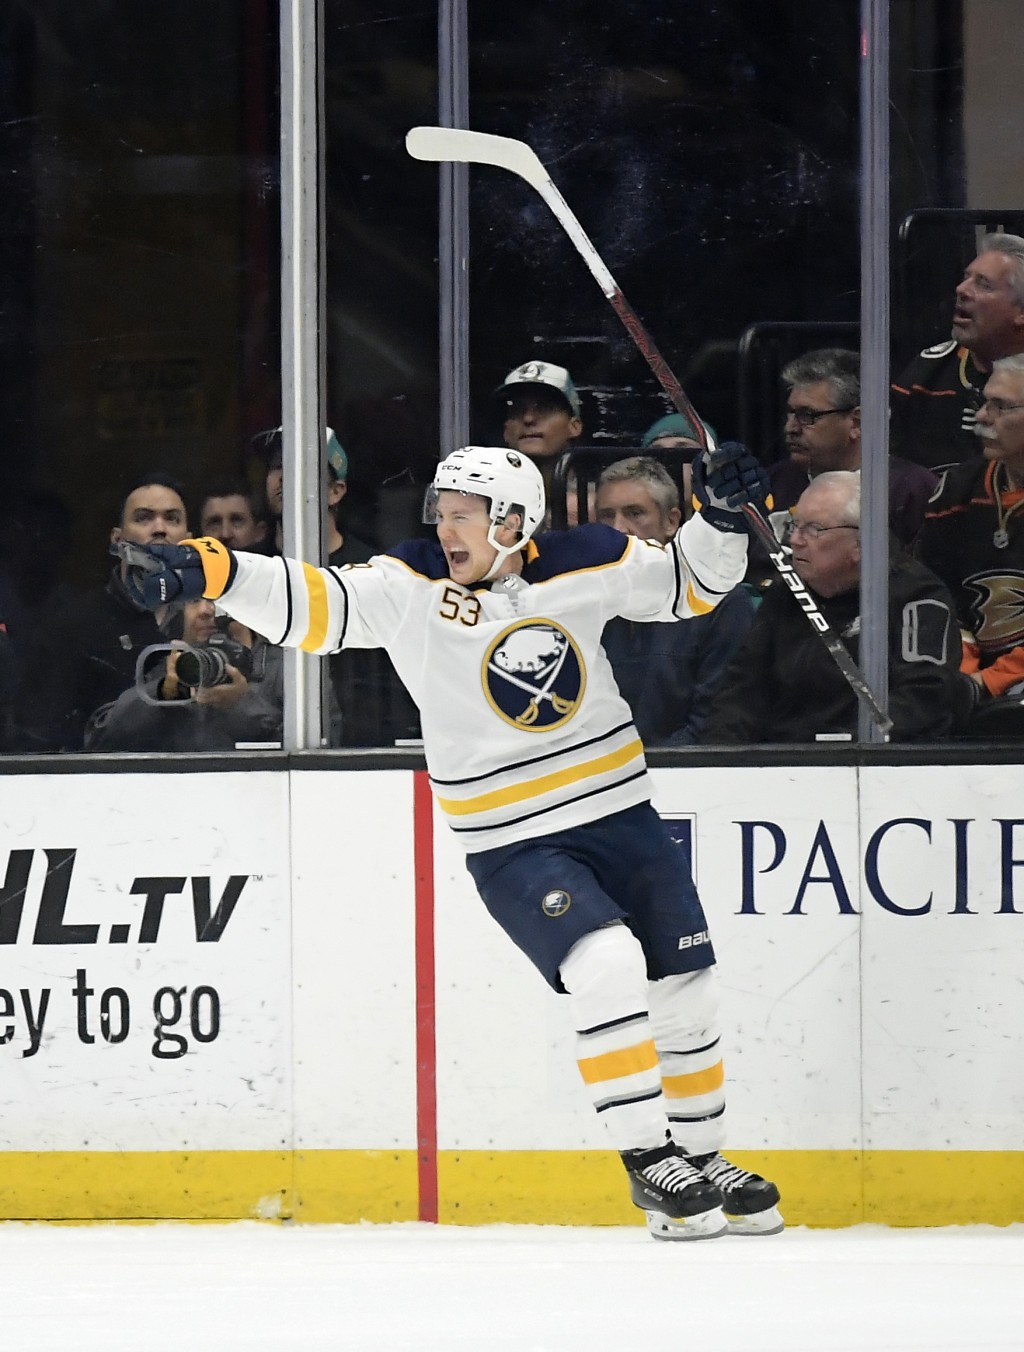 Buffalo Sabres center Jeff Skinner celebrates his goal during the second period of an NHL hockey game against the Anaheim Ducks Sunday, Oct. 21, 2018,